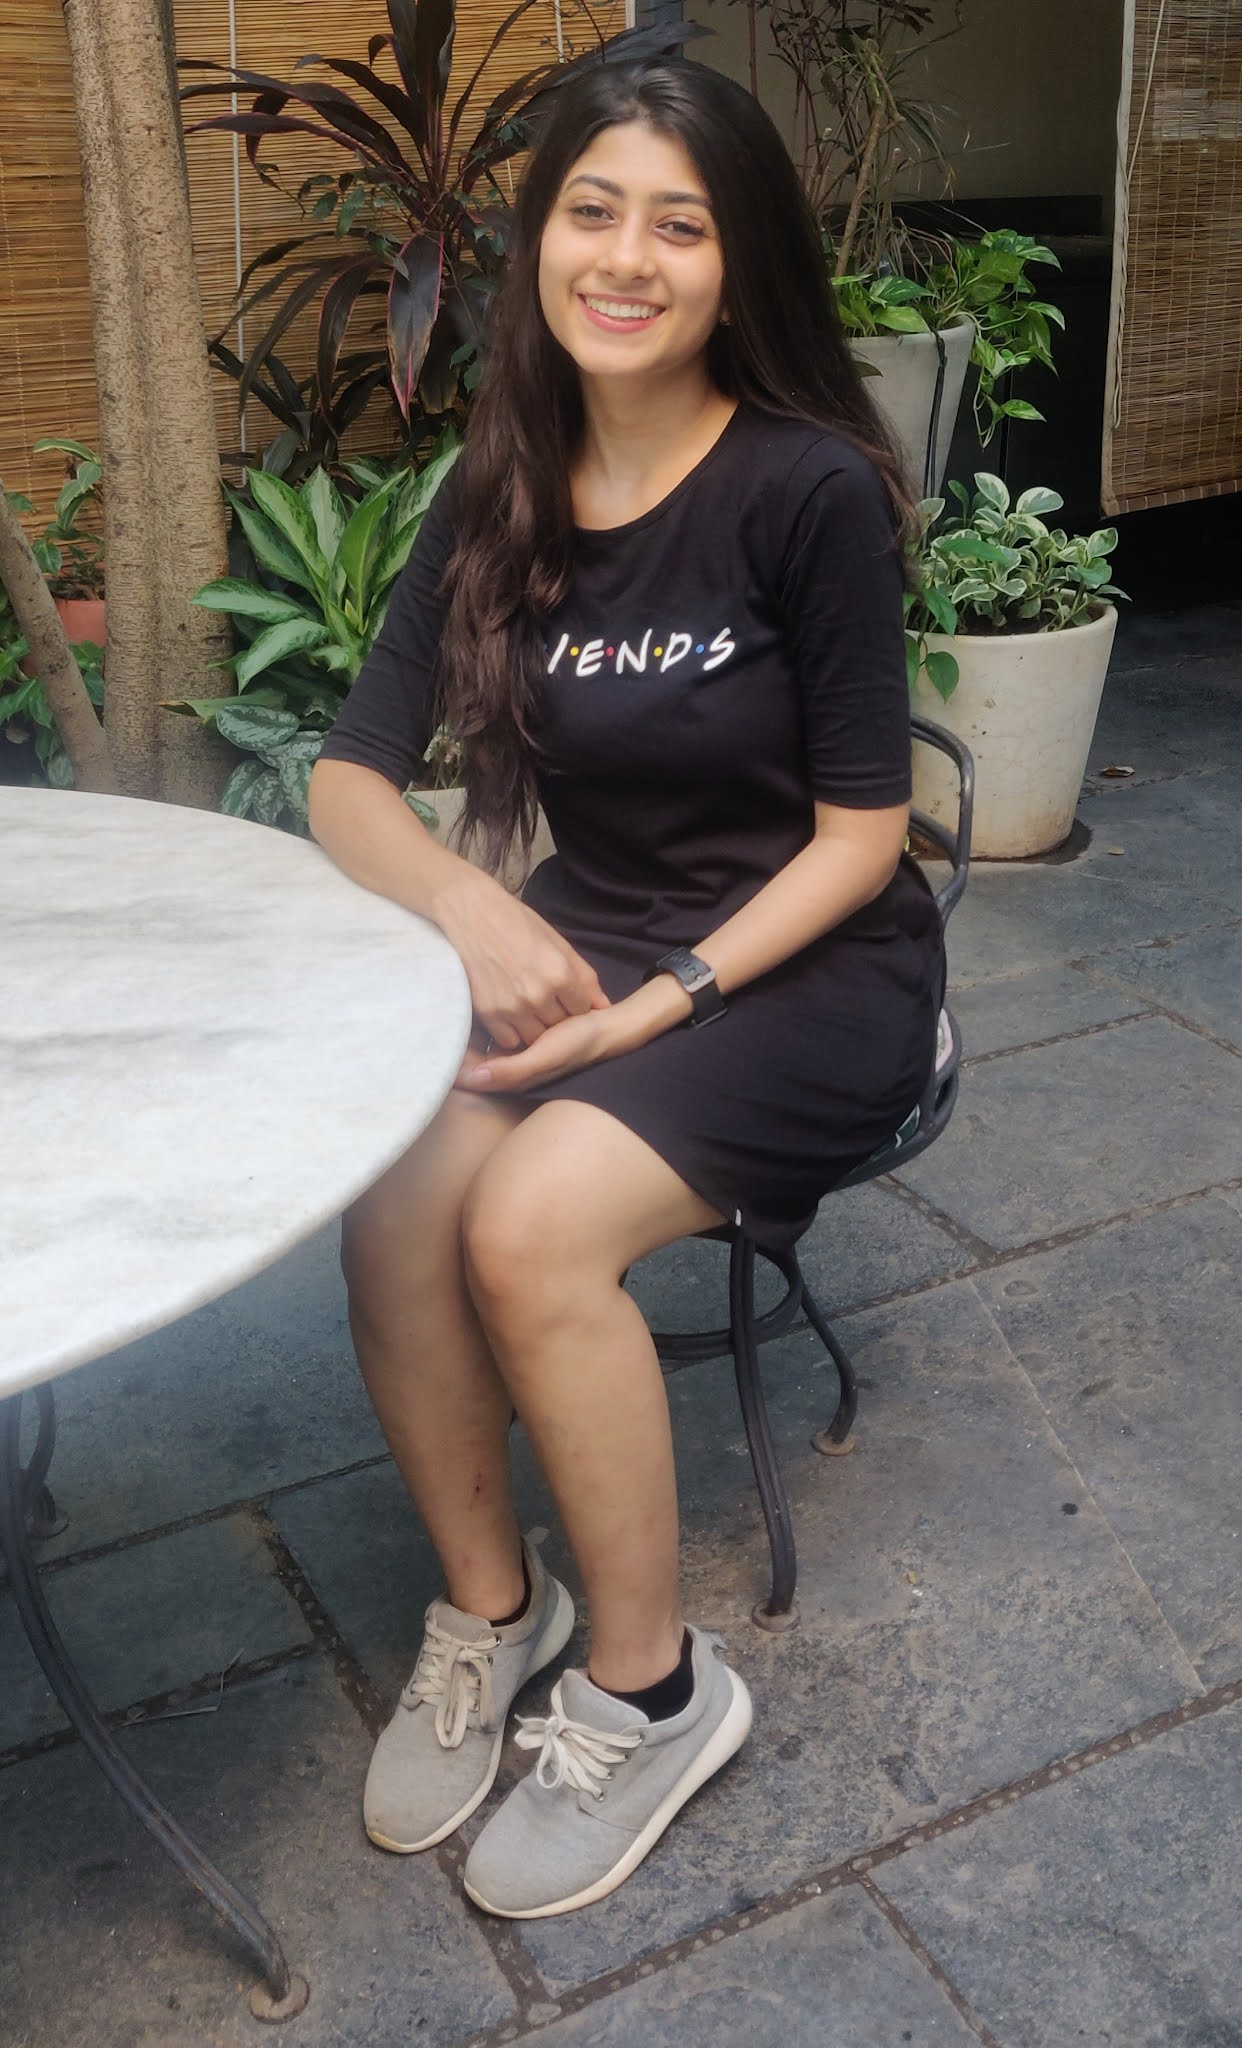 Nishi Mavani - If Your Body Took Time to Gain Weight Over a Period of Time You Also Need to Give Some Time for Your Body to Lose the Fat That Has Been Accumulated Over So Many Years (Fitness Blogger From India)